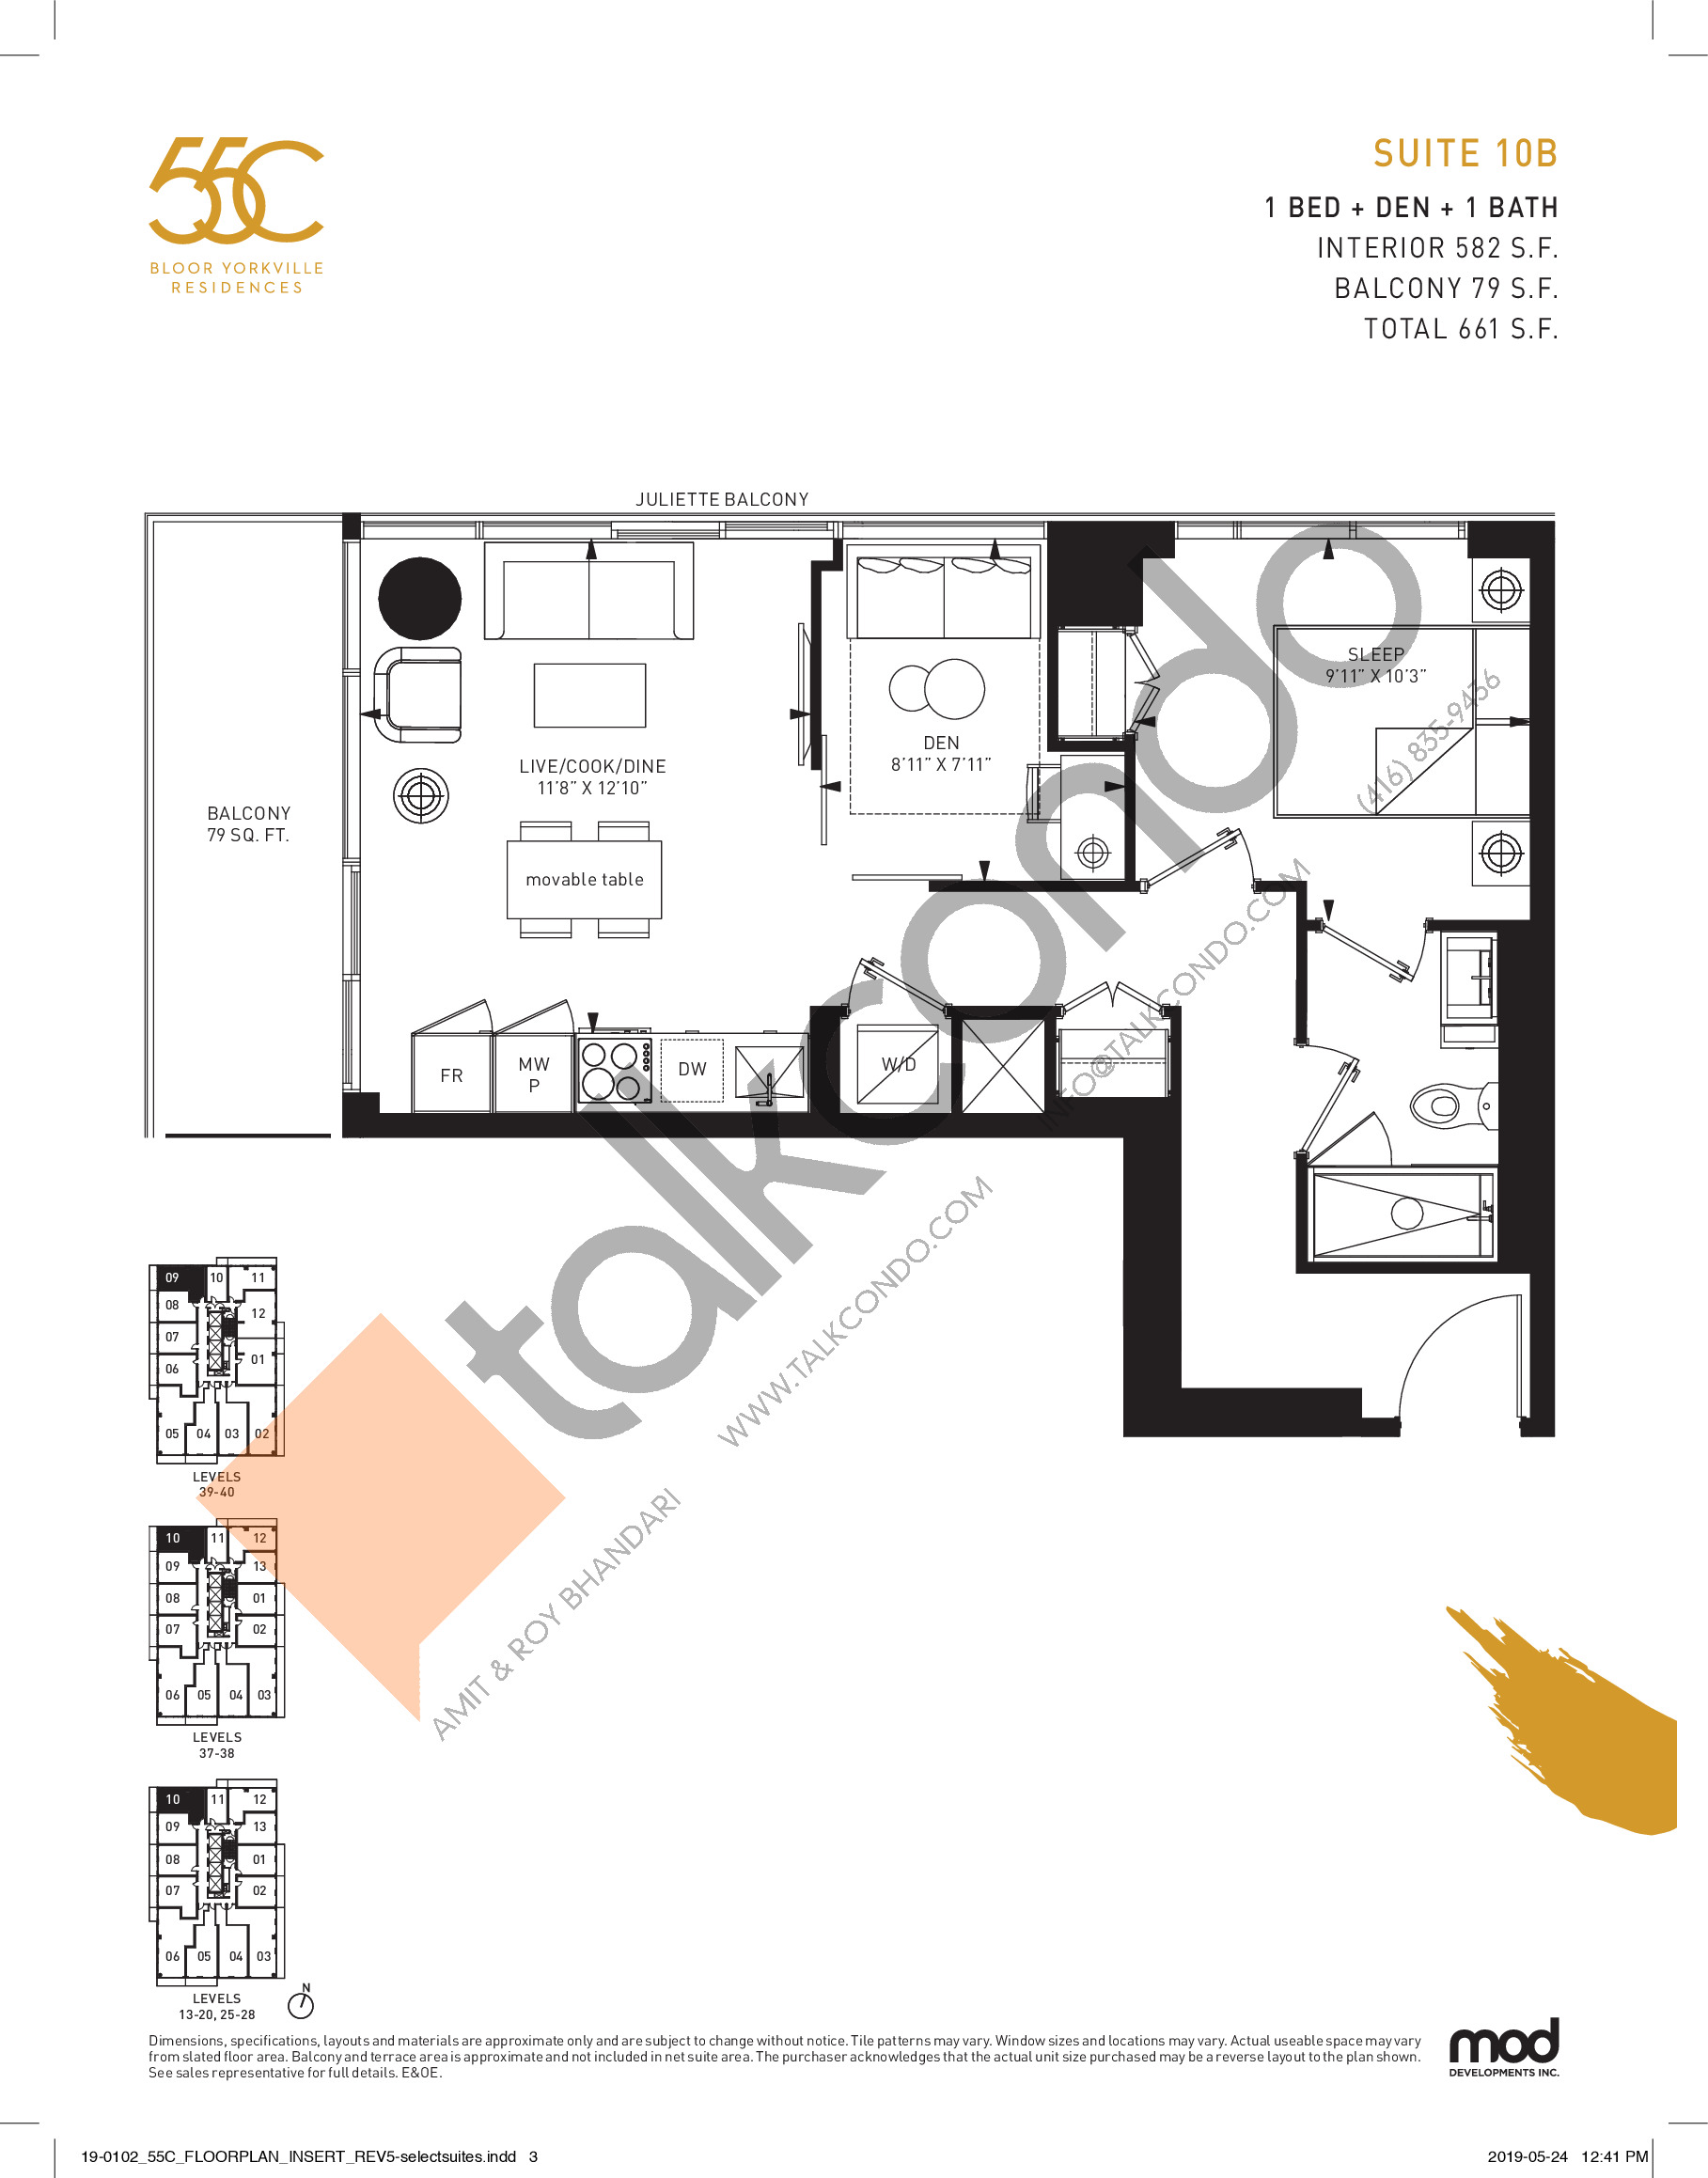 Suite 10B Floor Plan at 55C Condos - 582 sq.ft